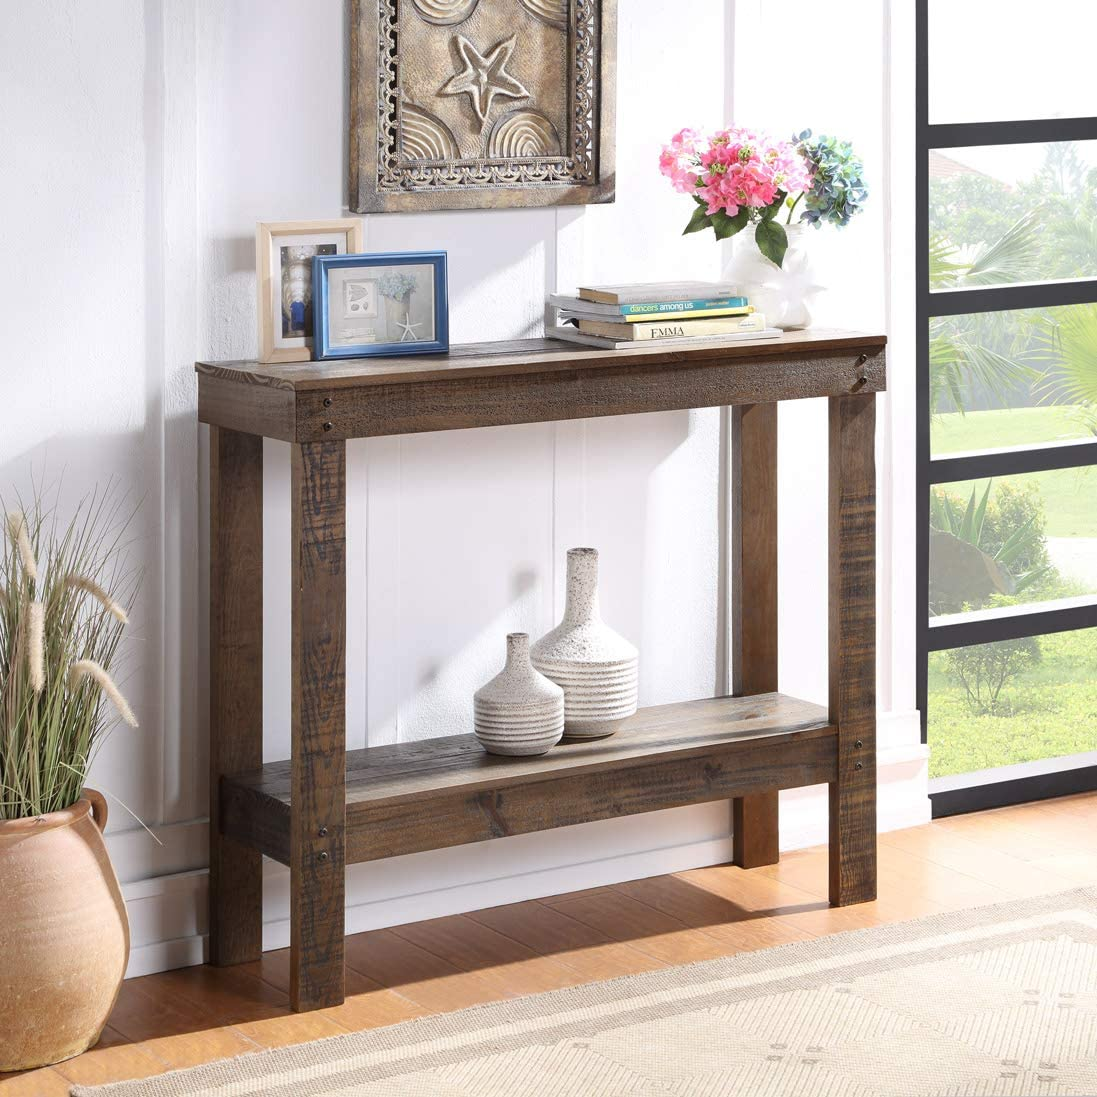 Console Table 2 毎日続々入荷 Tier for Tab 待望 Rustic Farmhouse Entryway